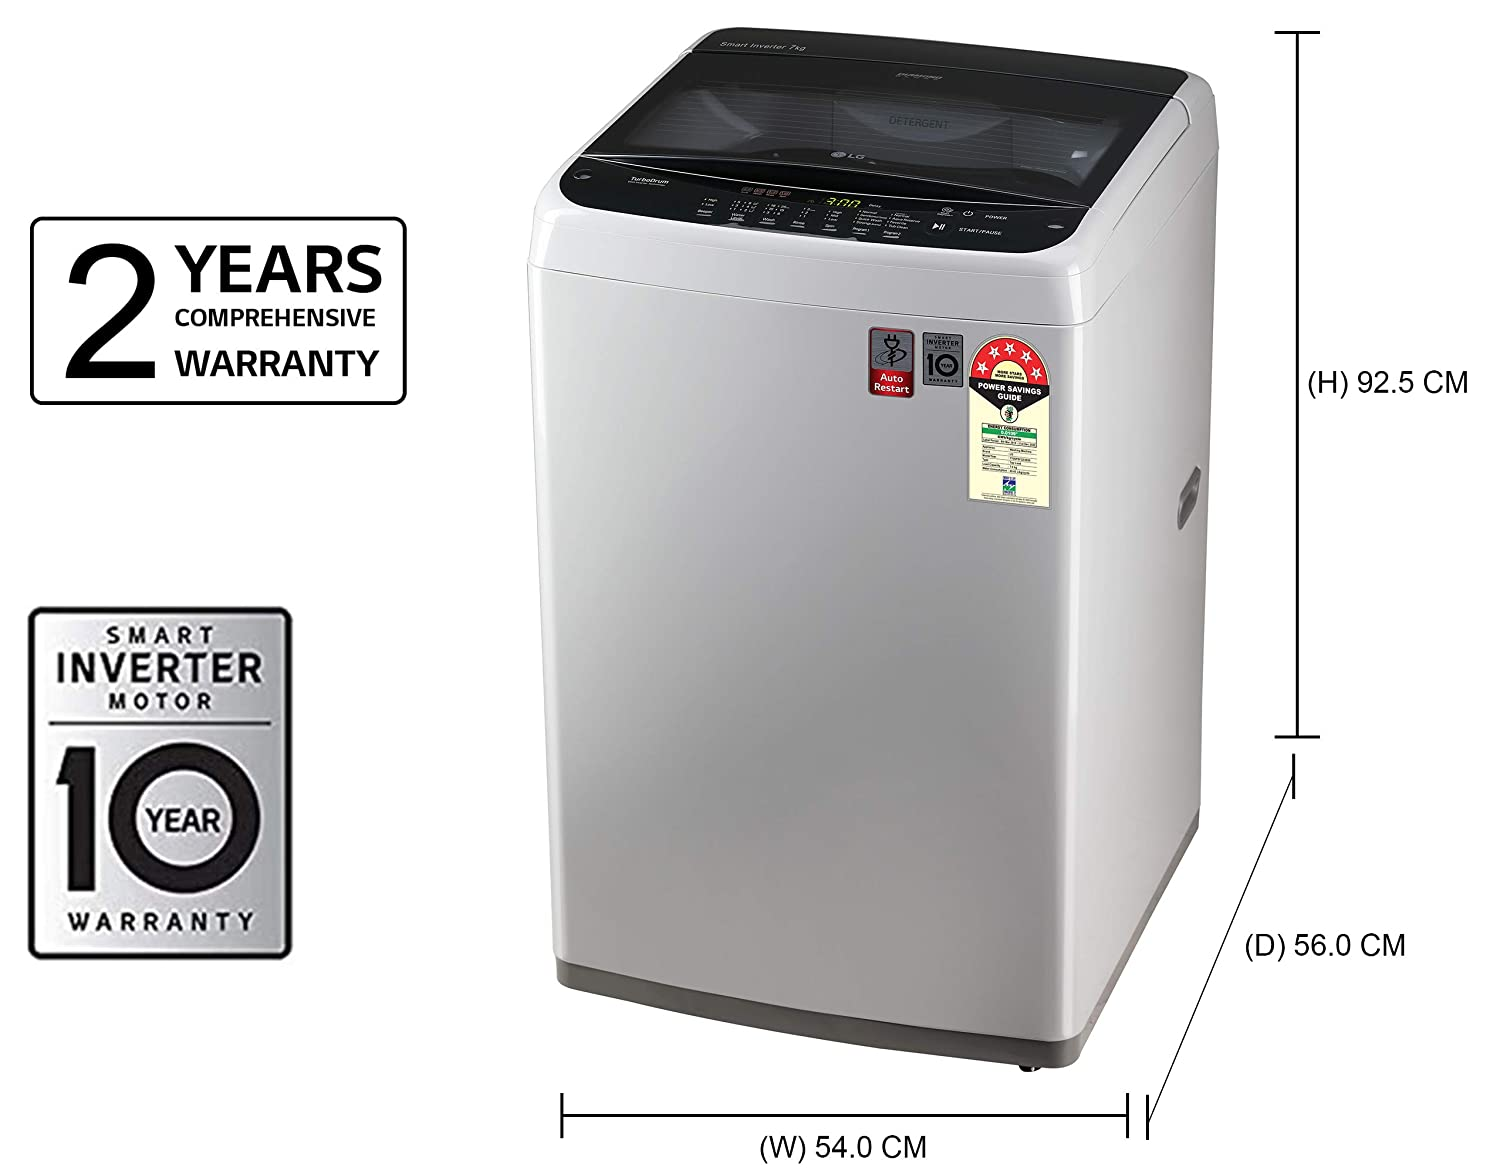 LG 7 kg Inverter Fully-Automatic Top Loading Washing Machine